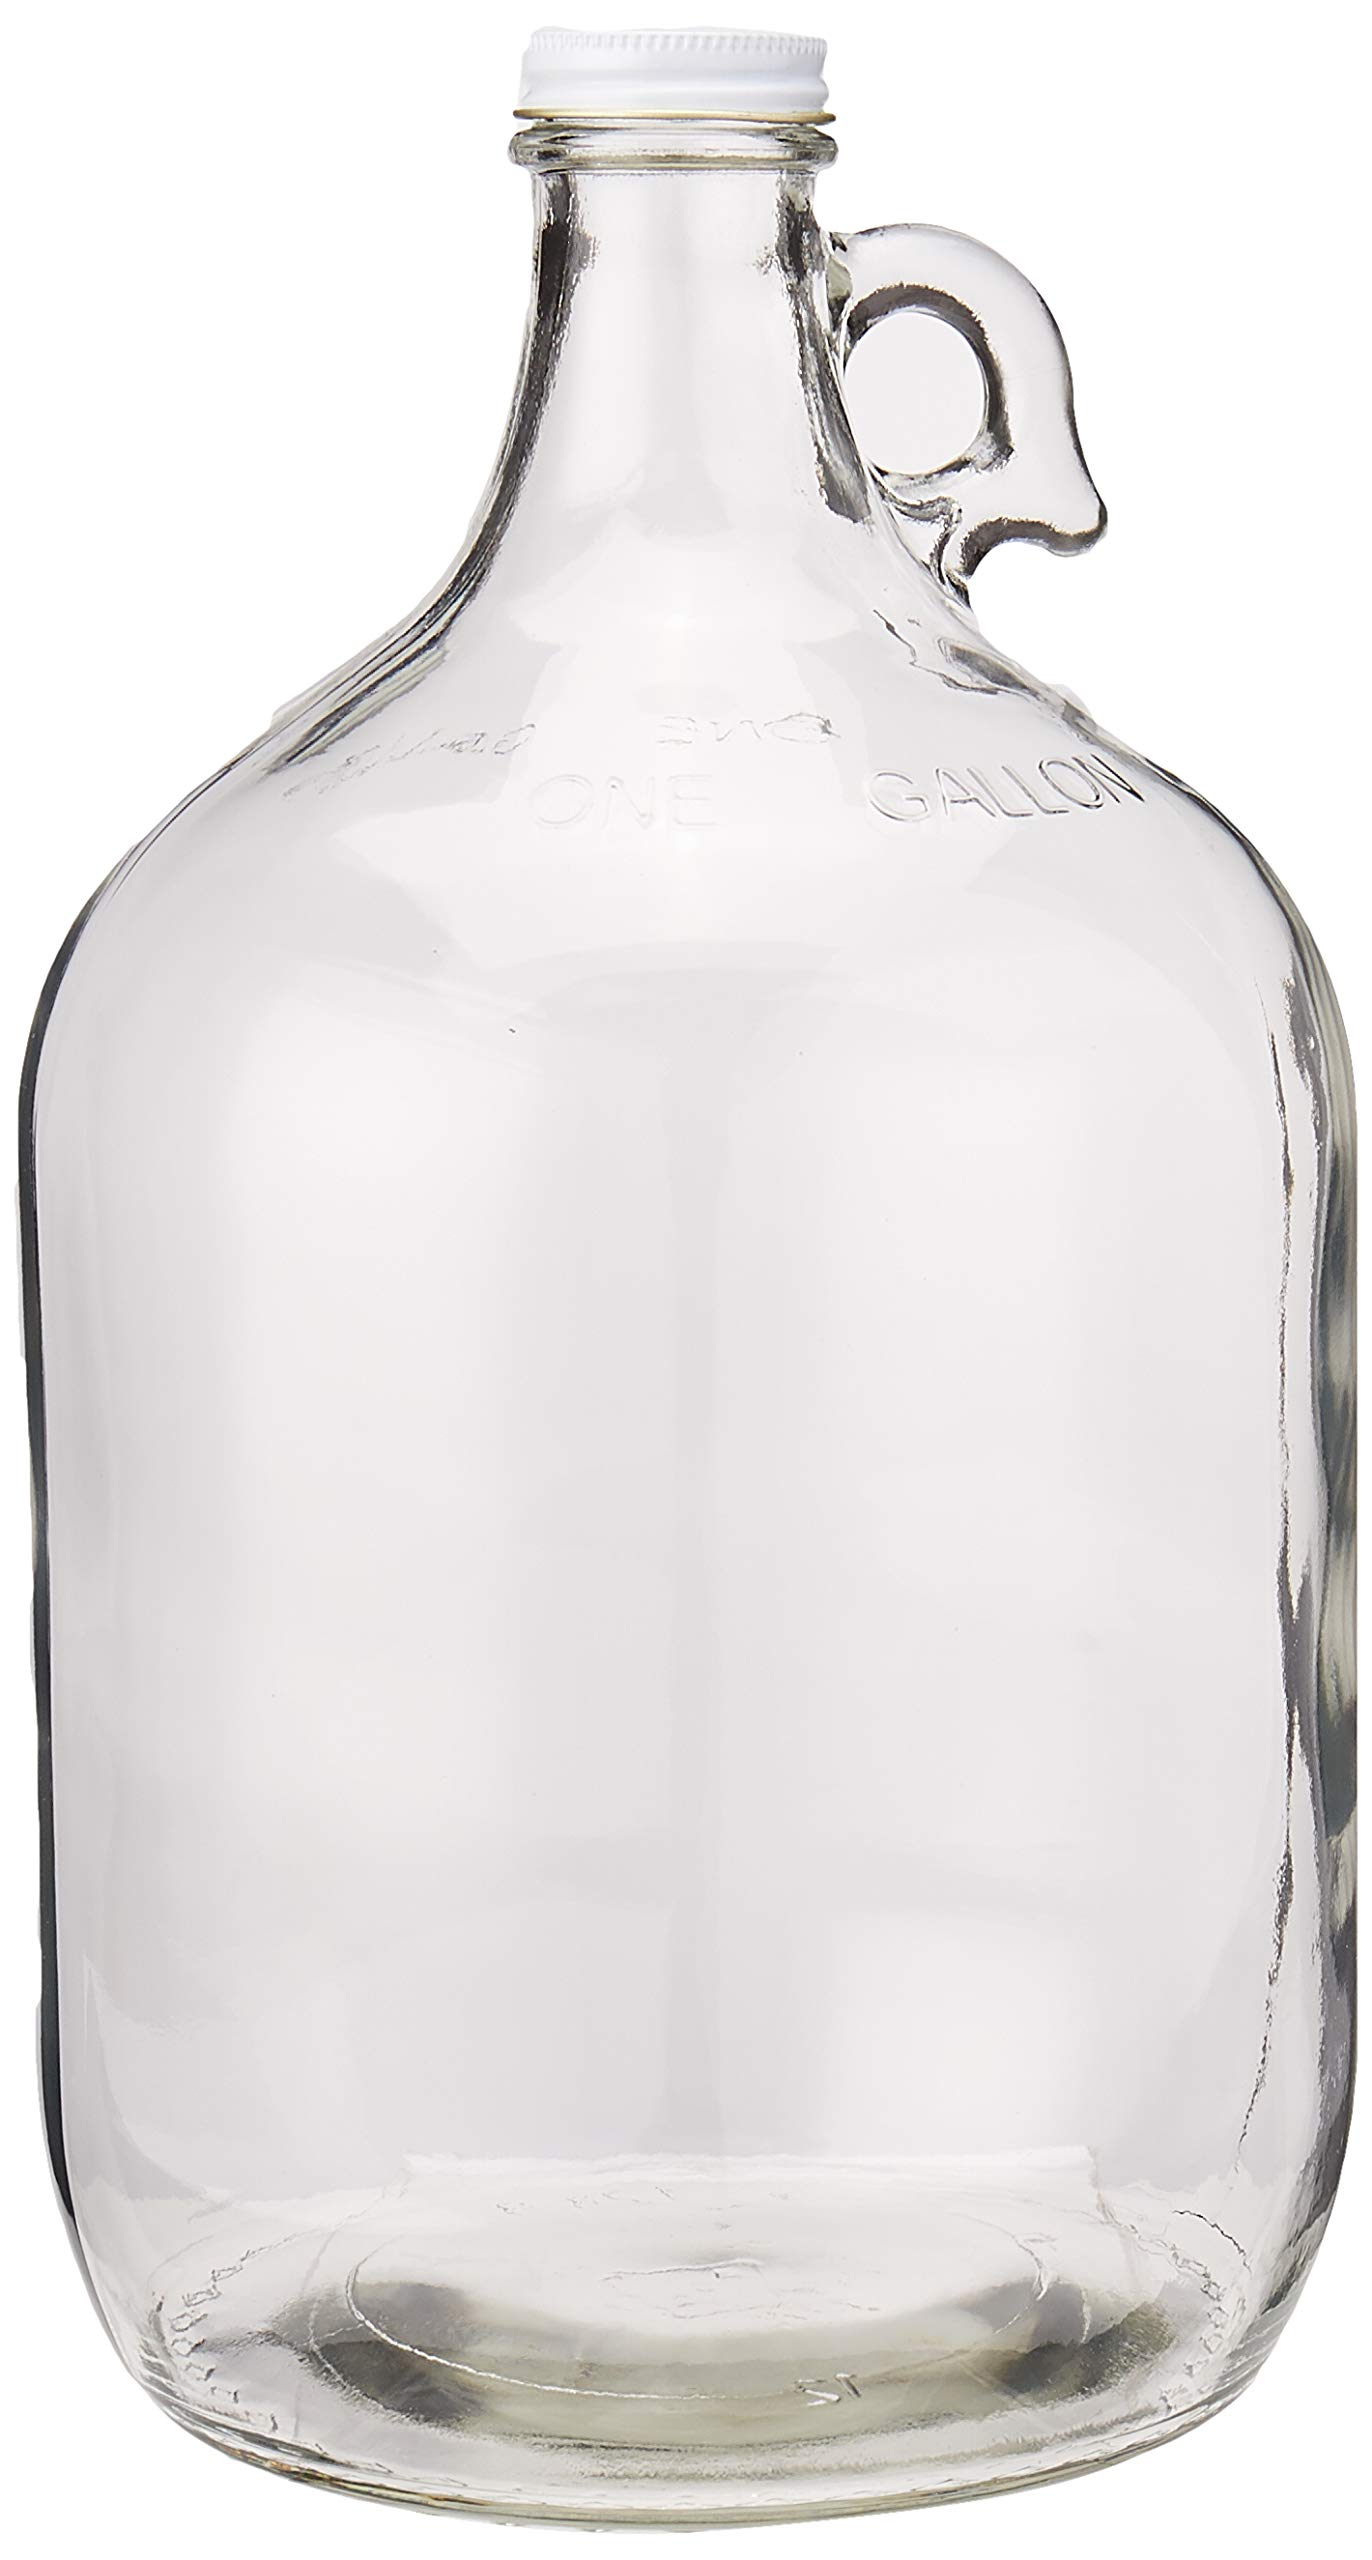 Home Brew Ohio Glass Water Bottle Includes 38 mm Metal Screw Cap, 1 gallon Capacity by Home Brew Ohio